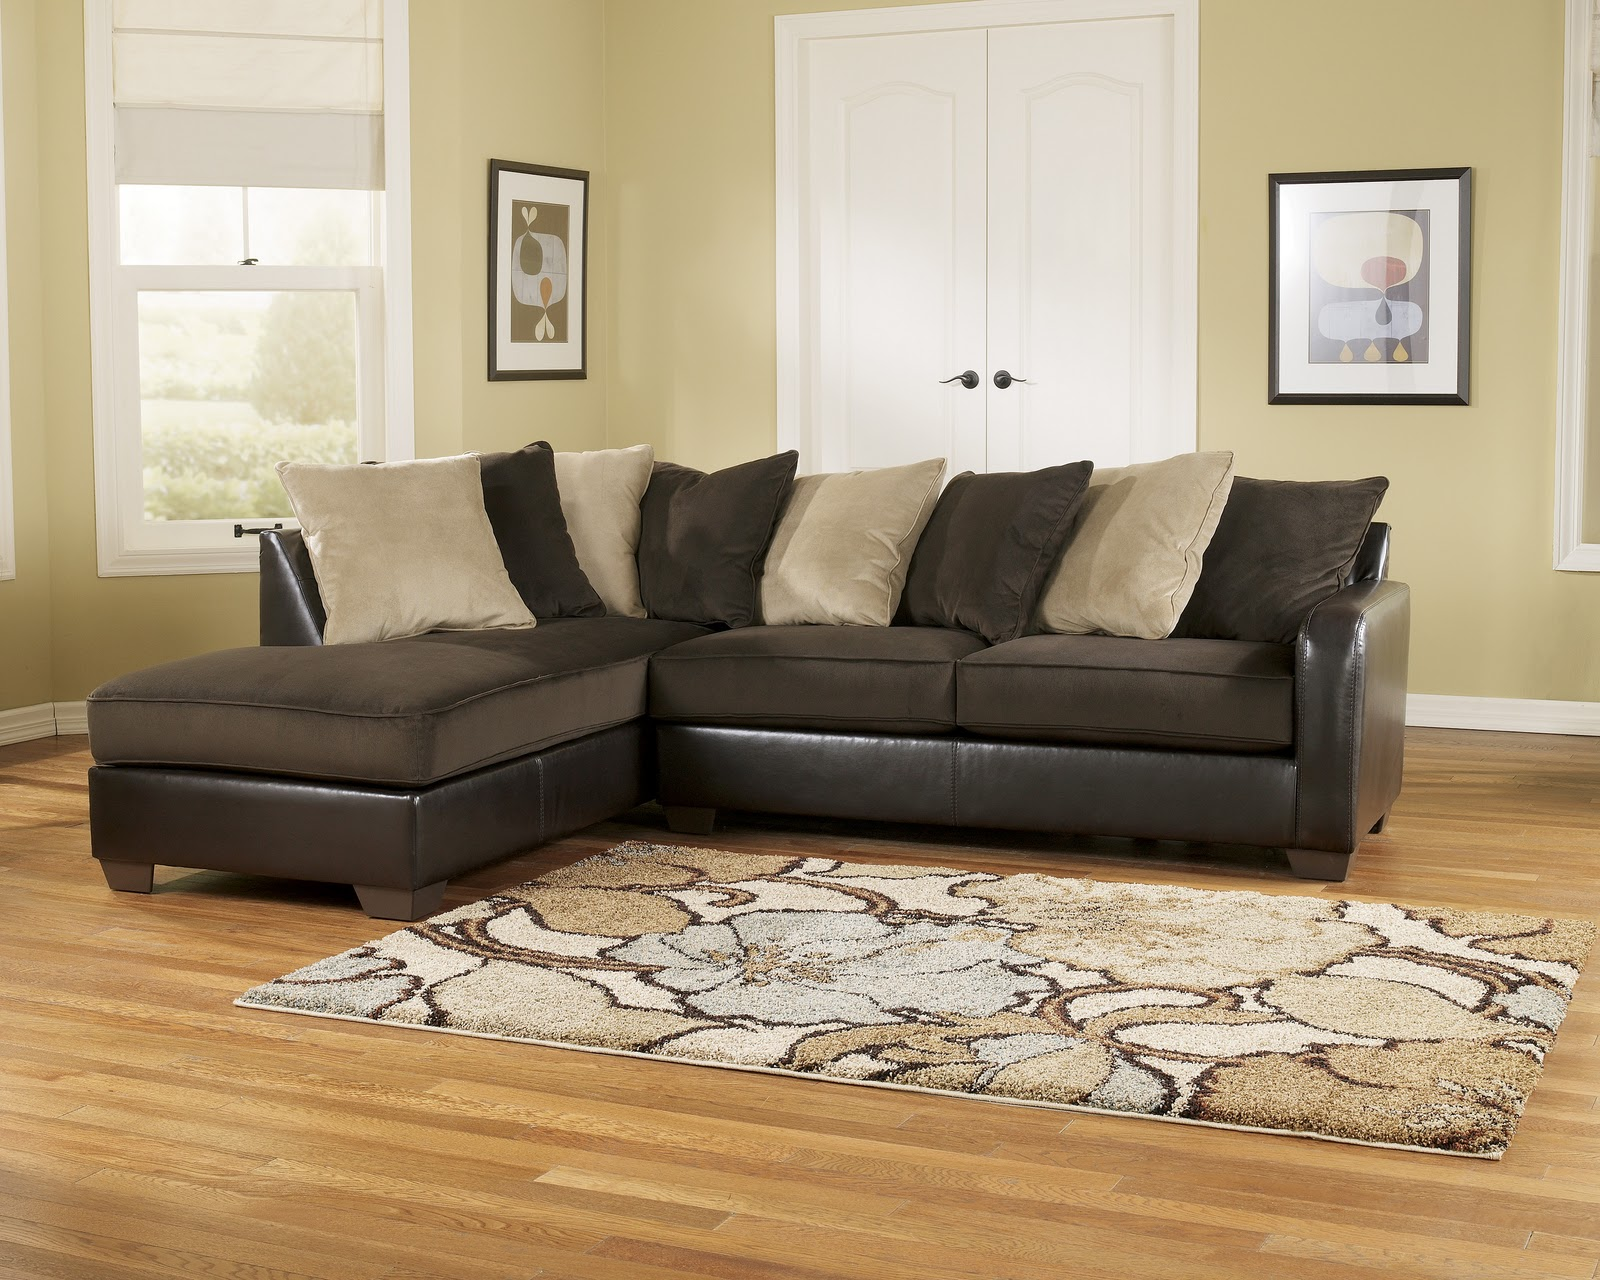 Living room royal furniture outlet for Furniture outlet